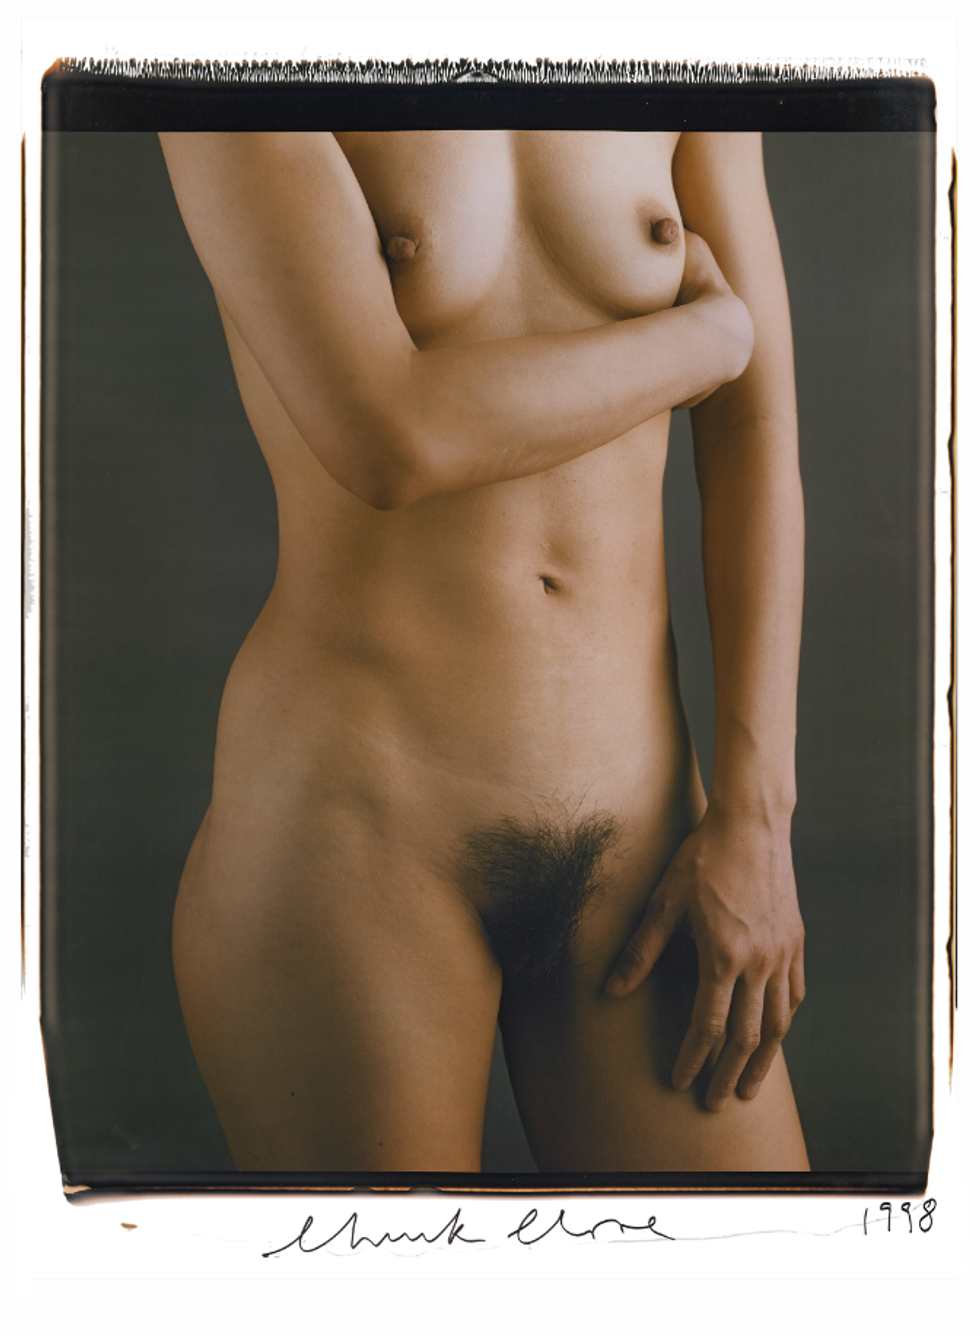 Preview Chuck Close's Nudes Before They Arrive to New York (NSFW)